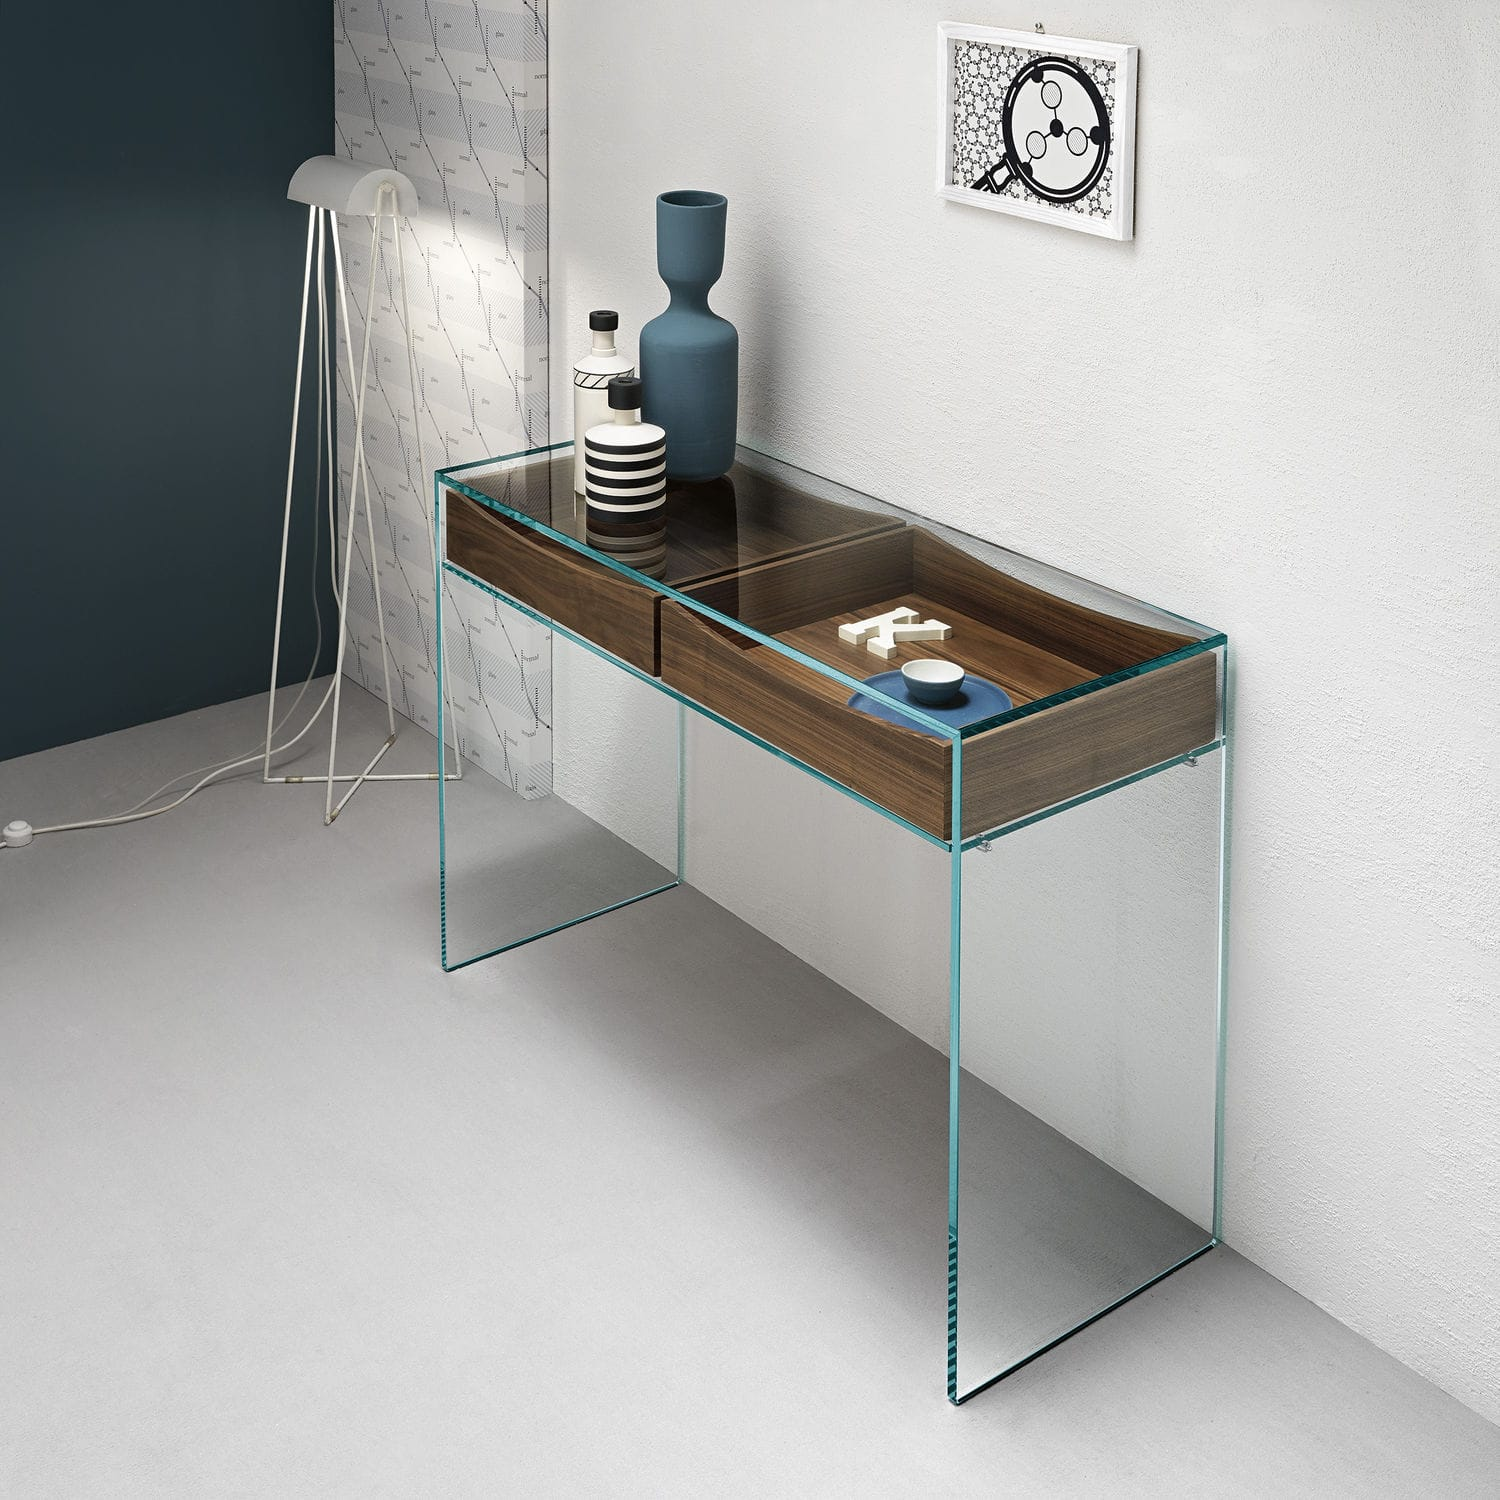 Contemporary Sideboard Table / Wooden / Glass / Rectangular   GULLIVER 2 By  M.U.